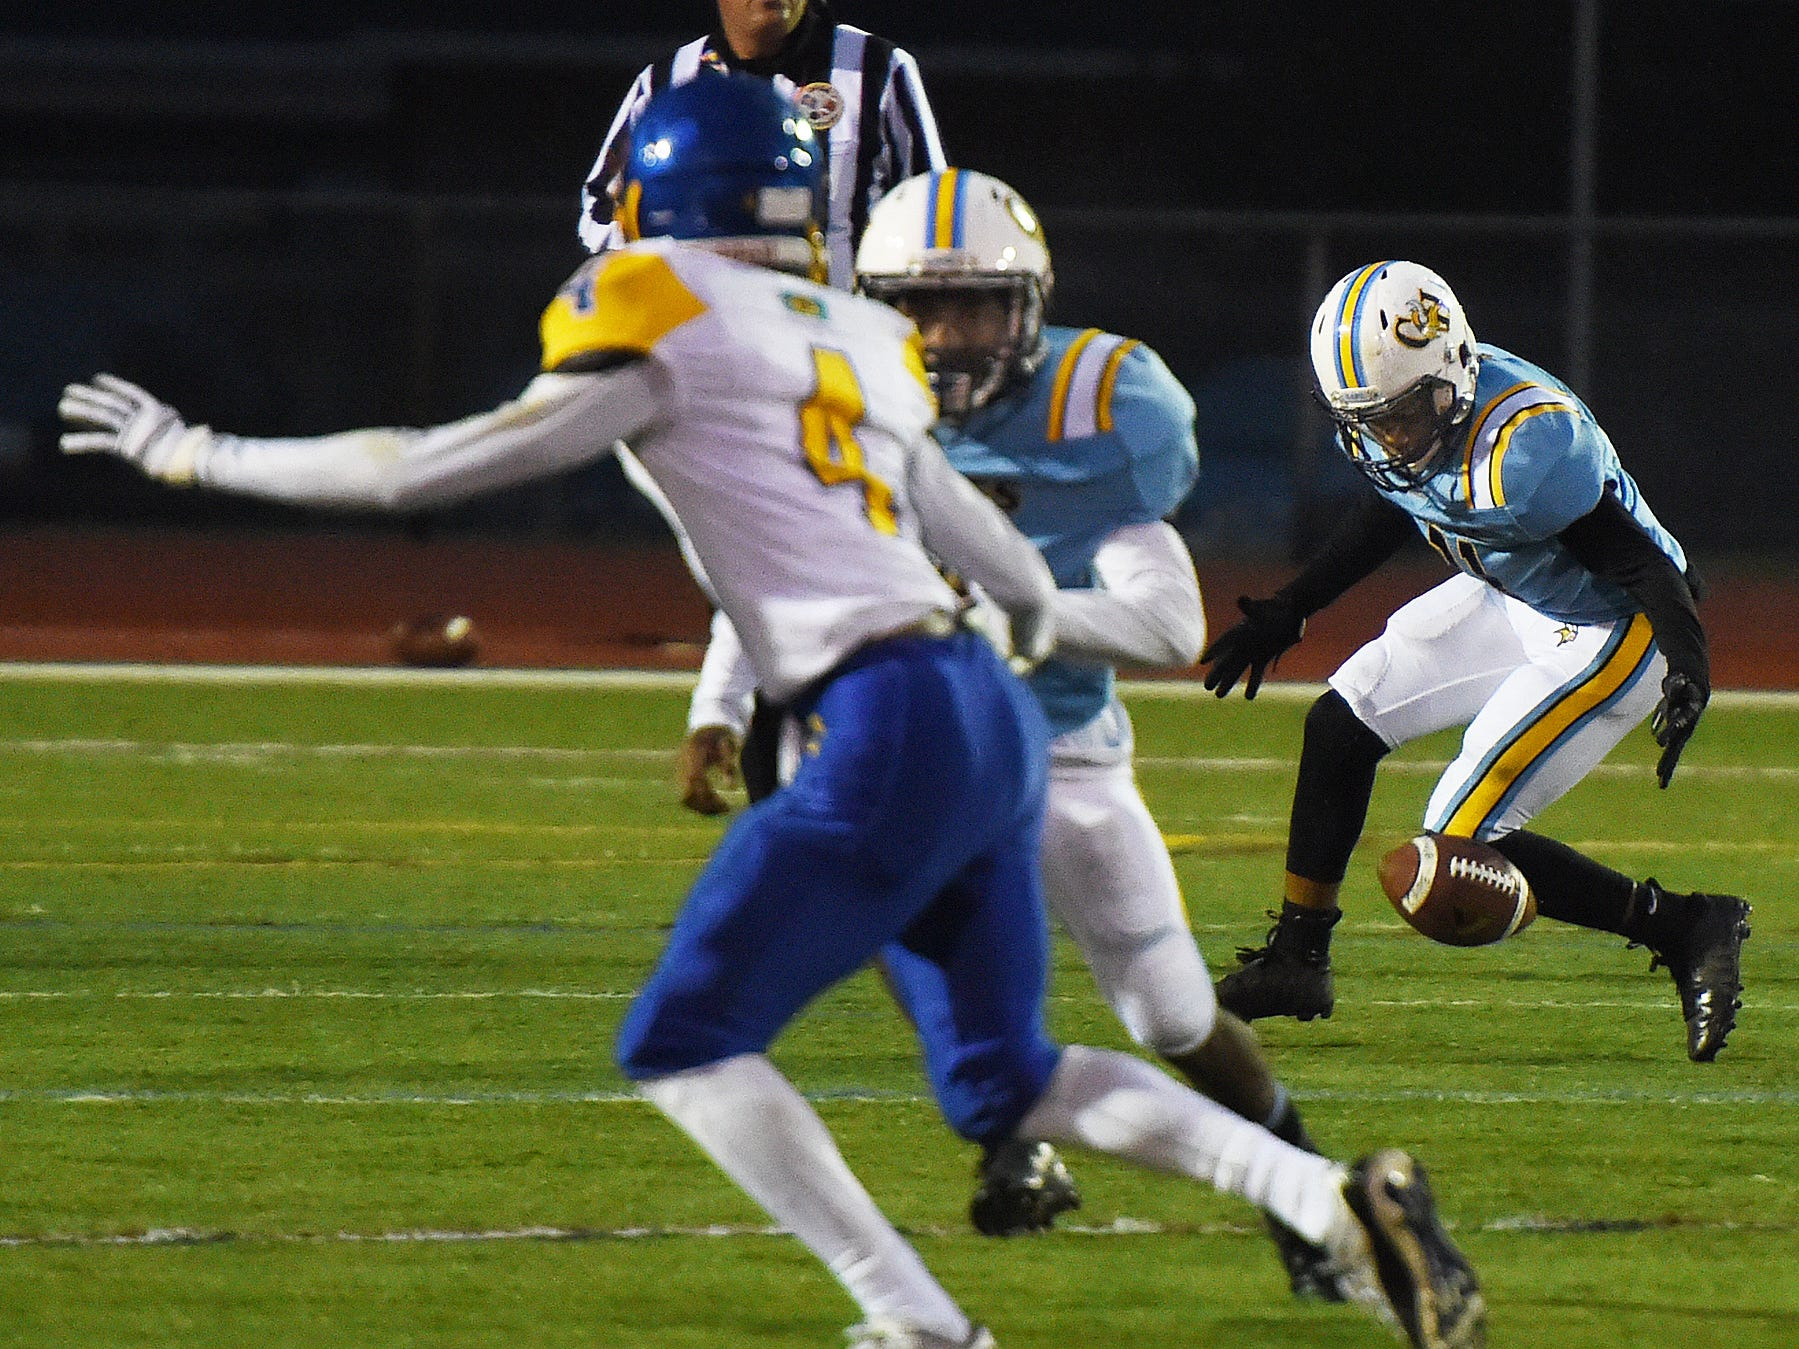 Action from the Cape Henlopen v. Sussex Central game Oct. 26, 2018.